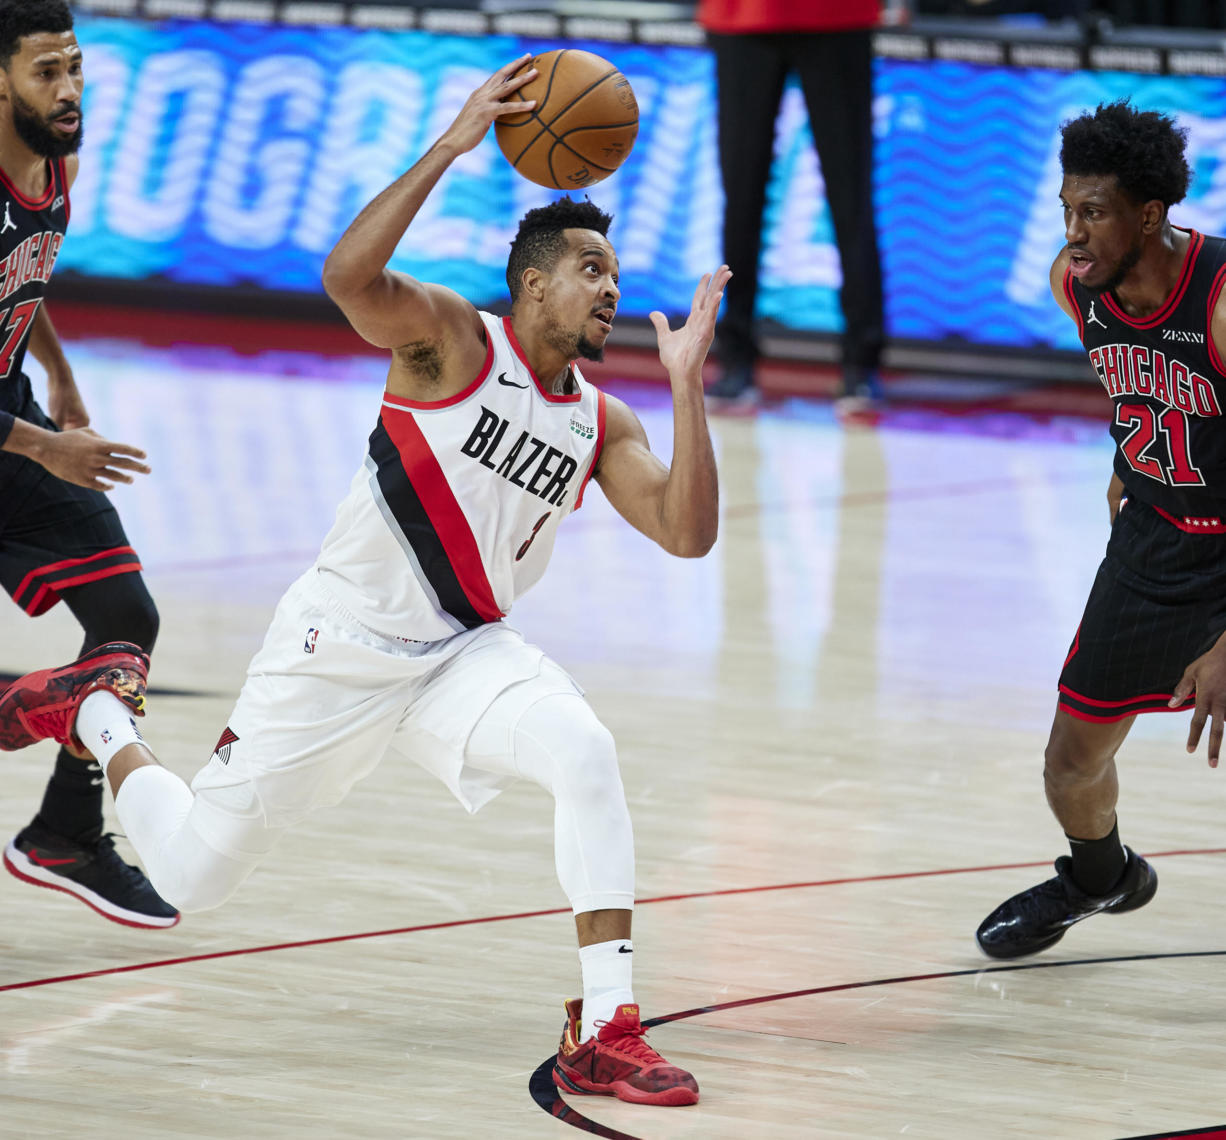 Portland Trail Blazers guard CJ McCollum, center, drives to the basket between Chicago Bulls guard Garrett Temple, left, and forward Thaddeus Young, right, during the first half of an NBA basketball game in Portland, Ore., Tuesday, Jan. 5, 2021.